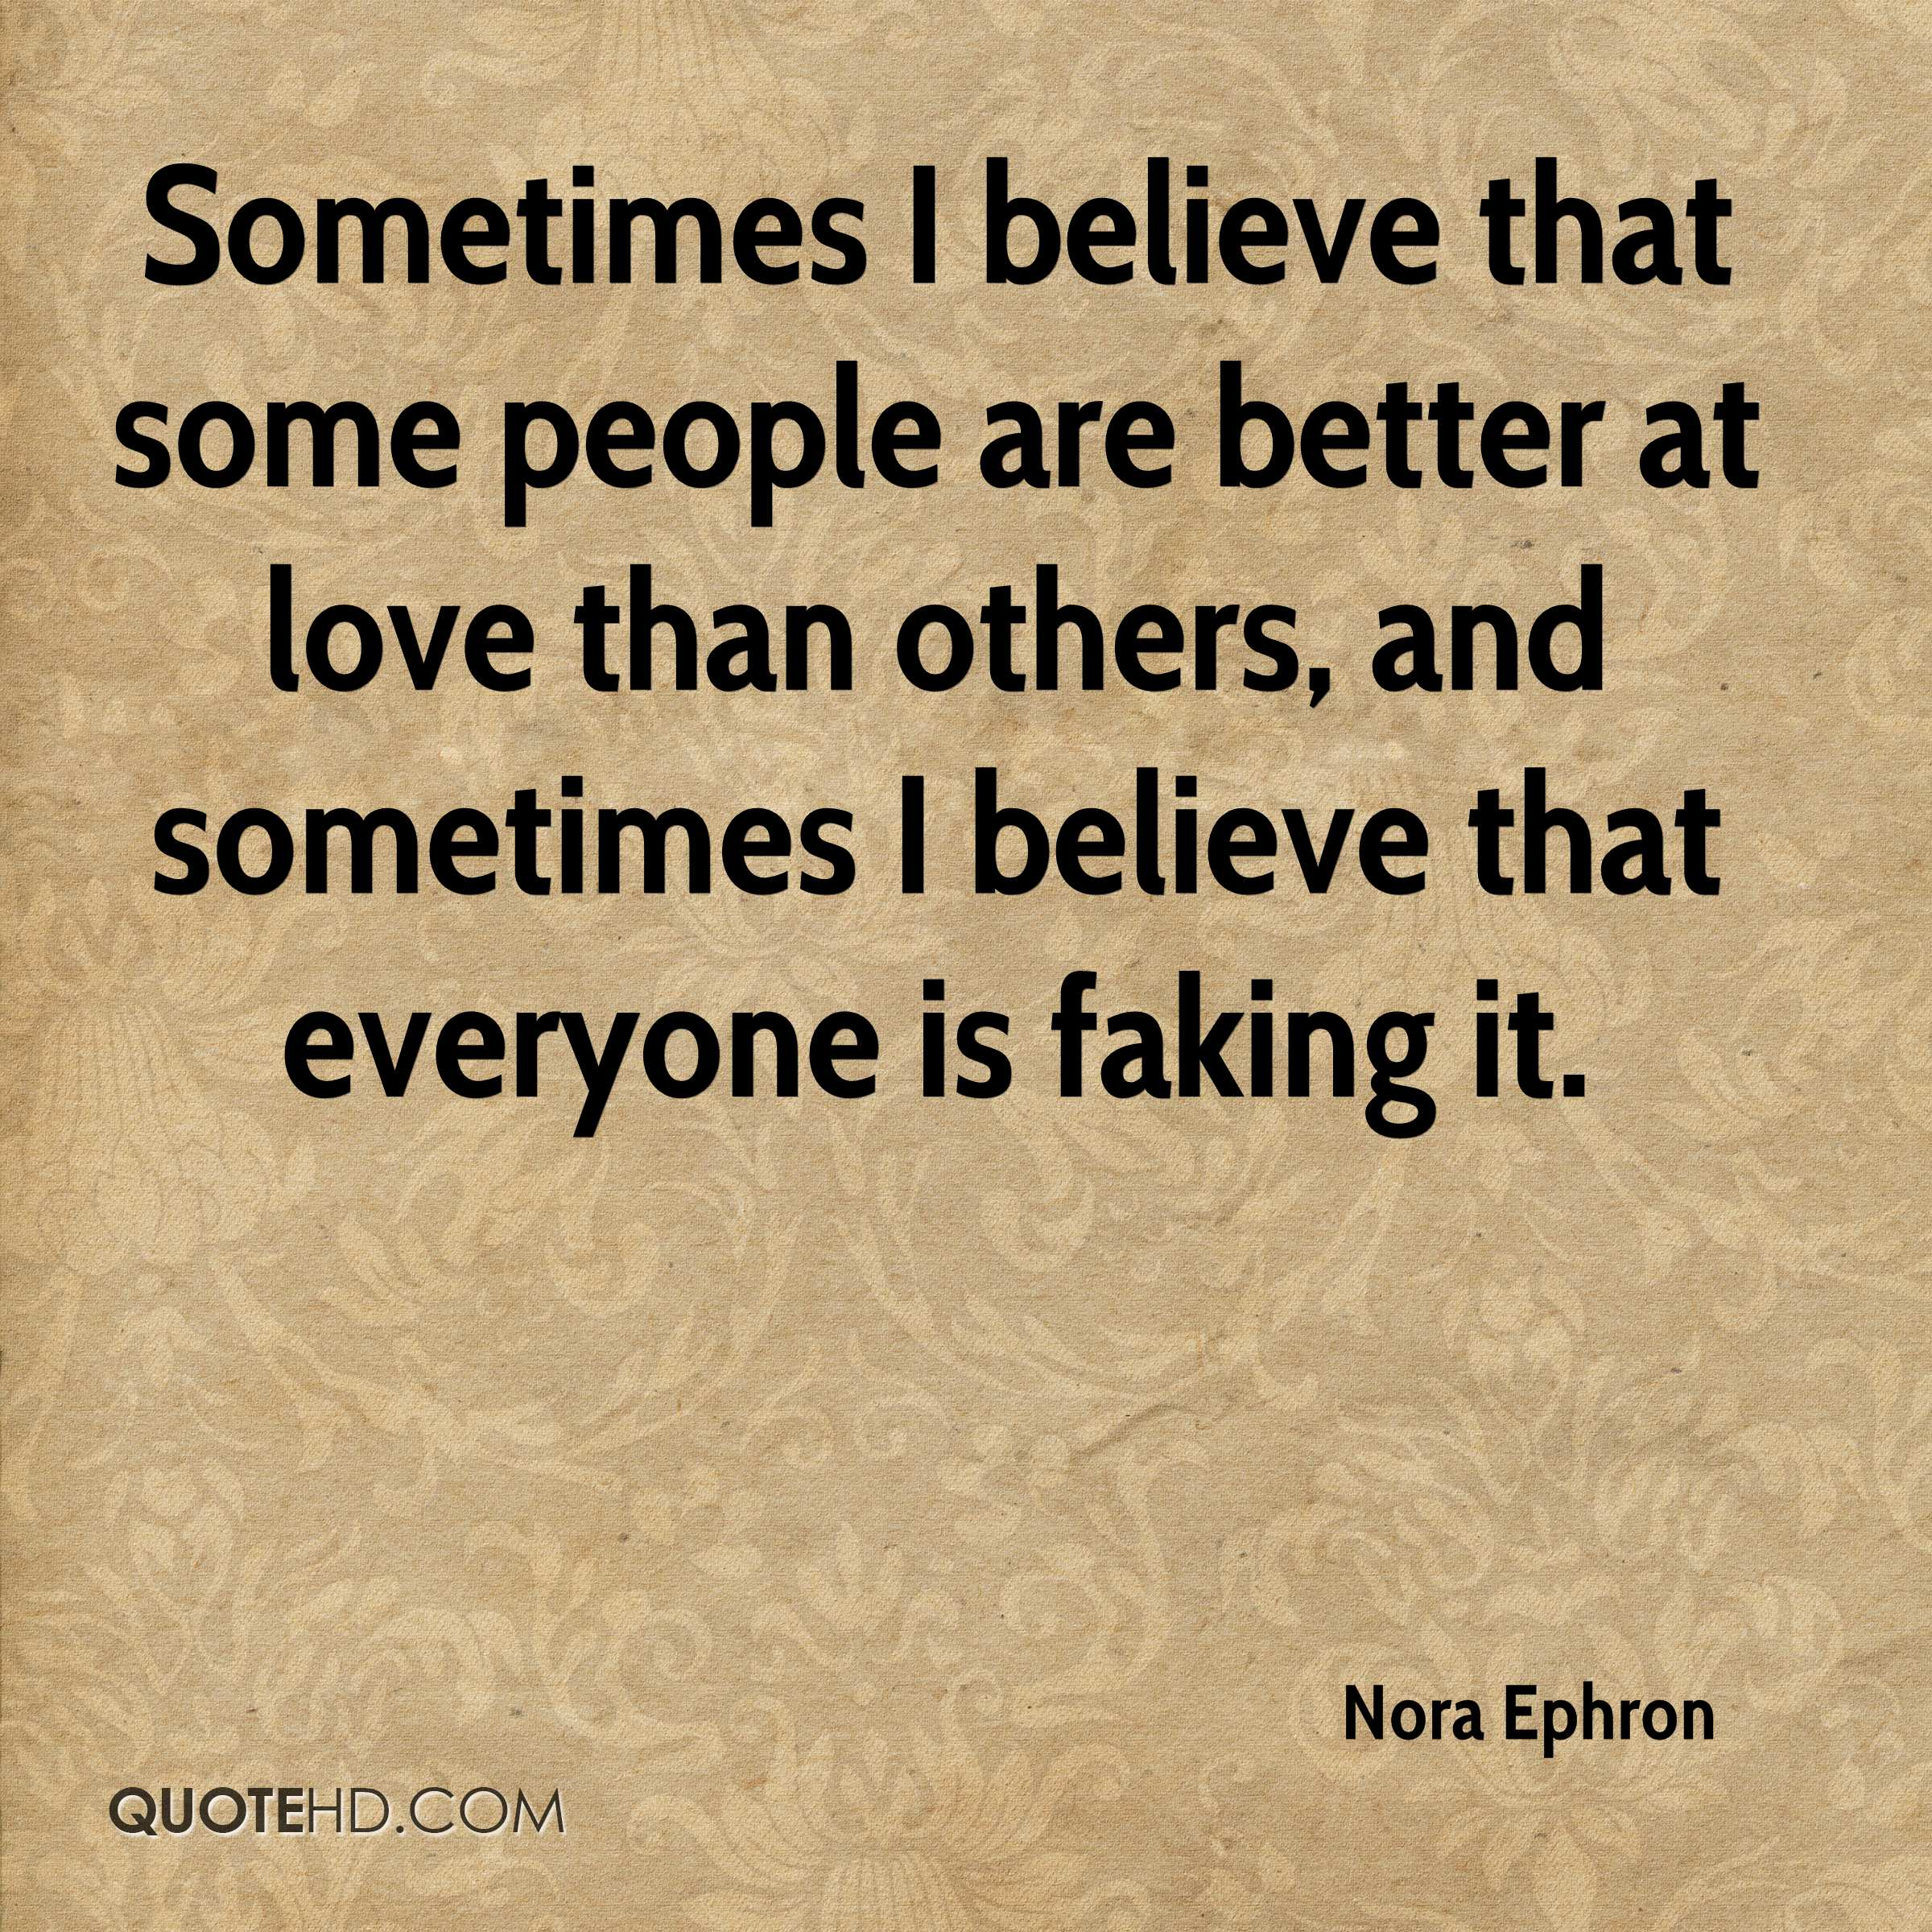 Sometimes I believe that some people are better at love than others, and sometimes I believe that everyone is faking it.